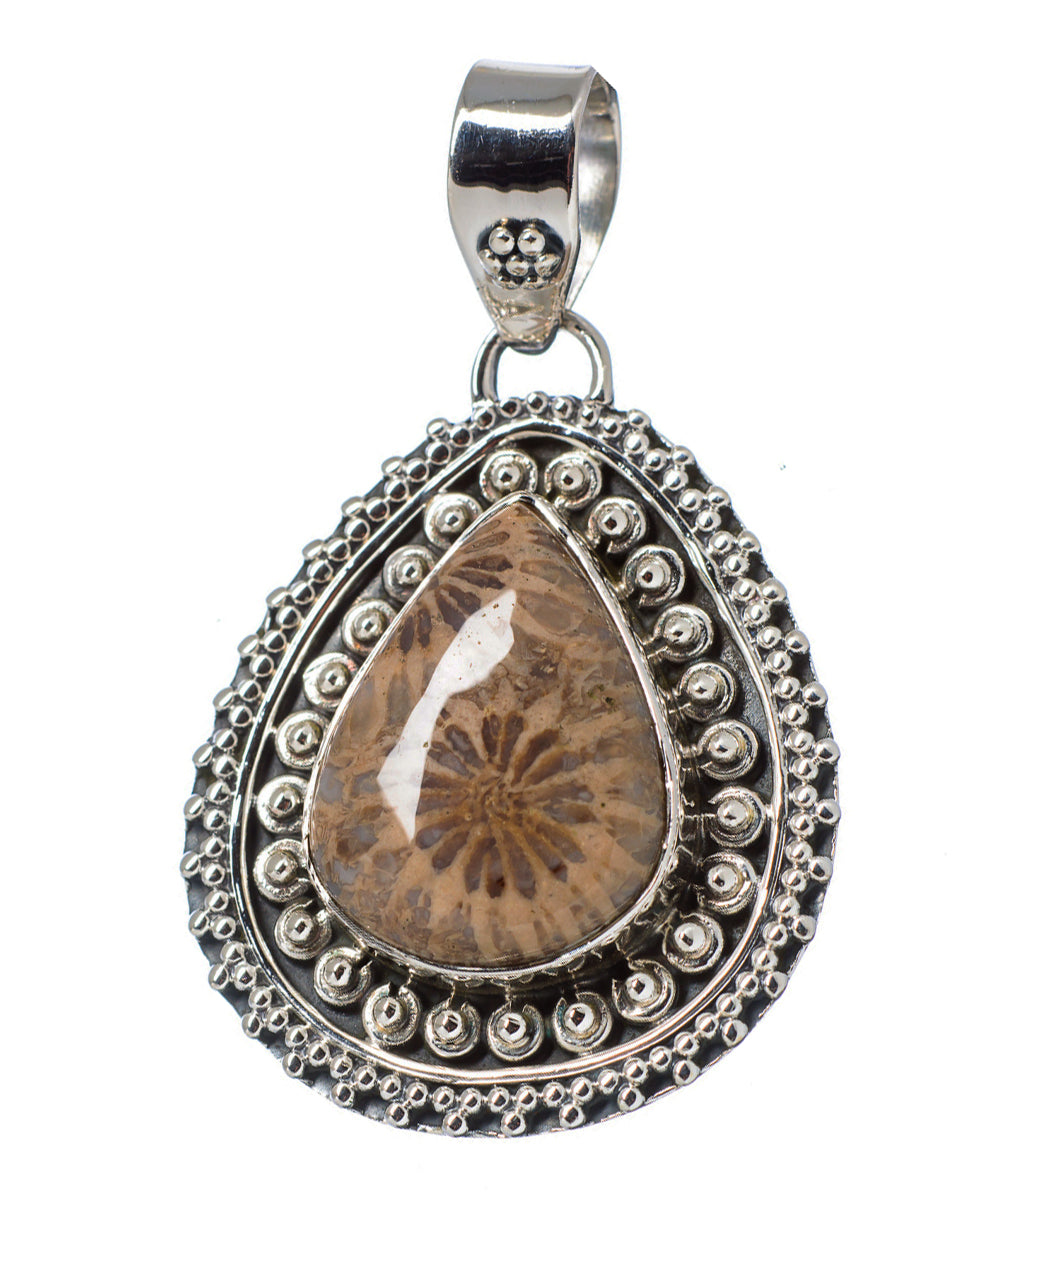 Fossilized Coral pendant for wise financial planning